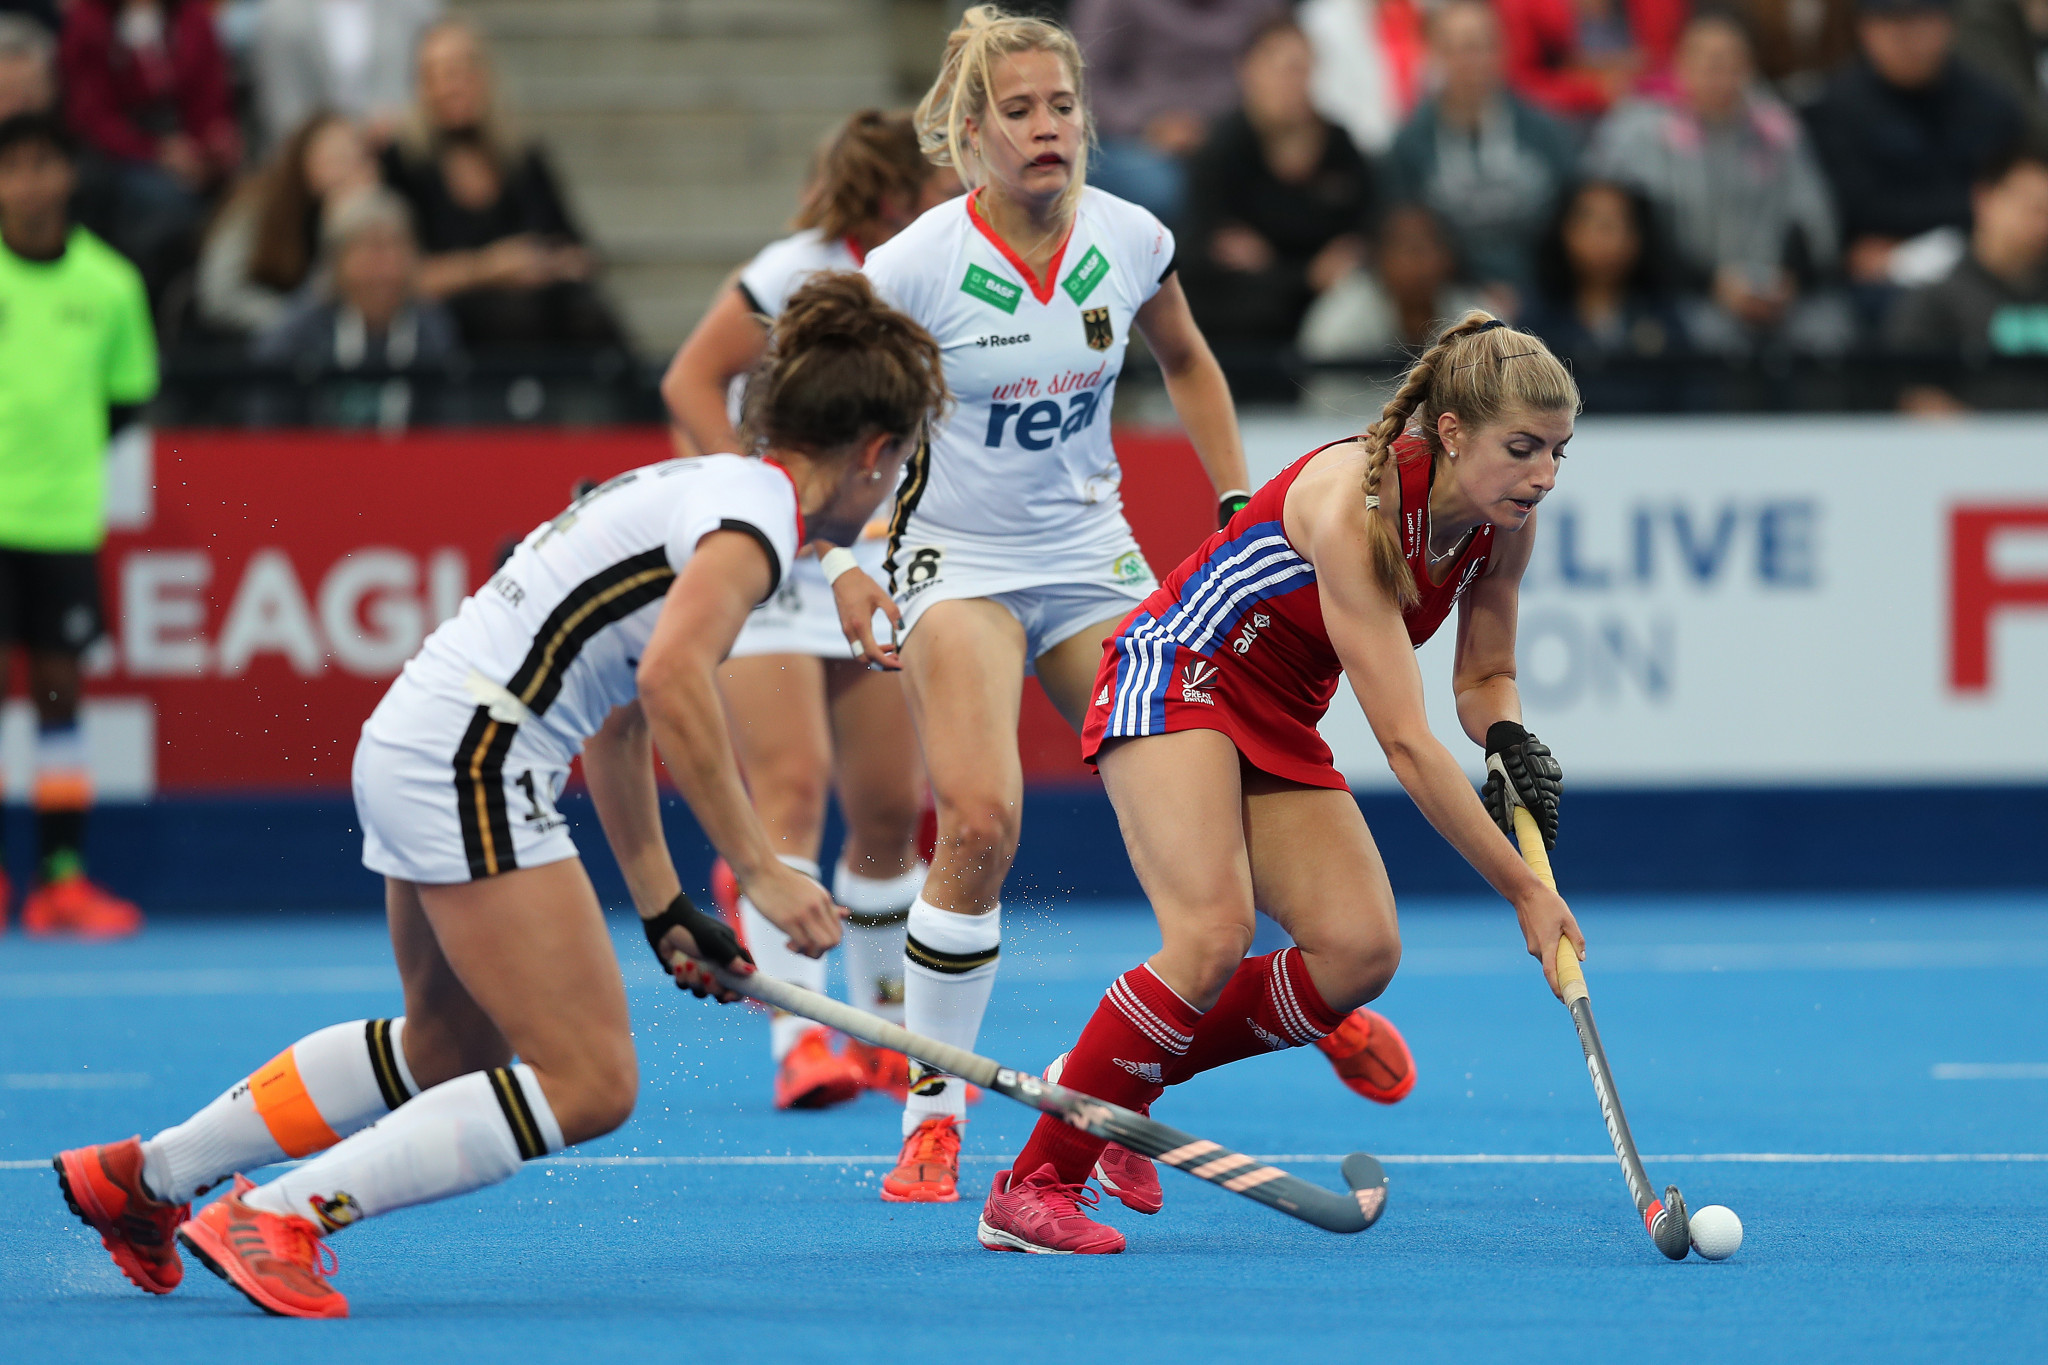 Britain to end five-month FIH Hockey Pro League hiatus against Germany